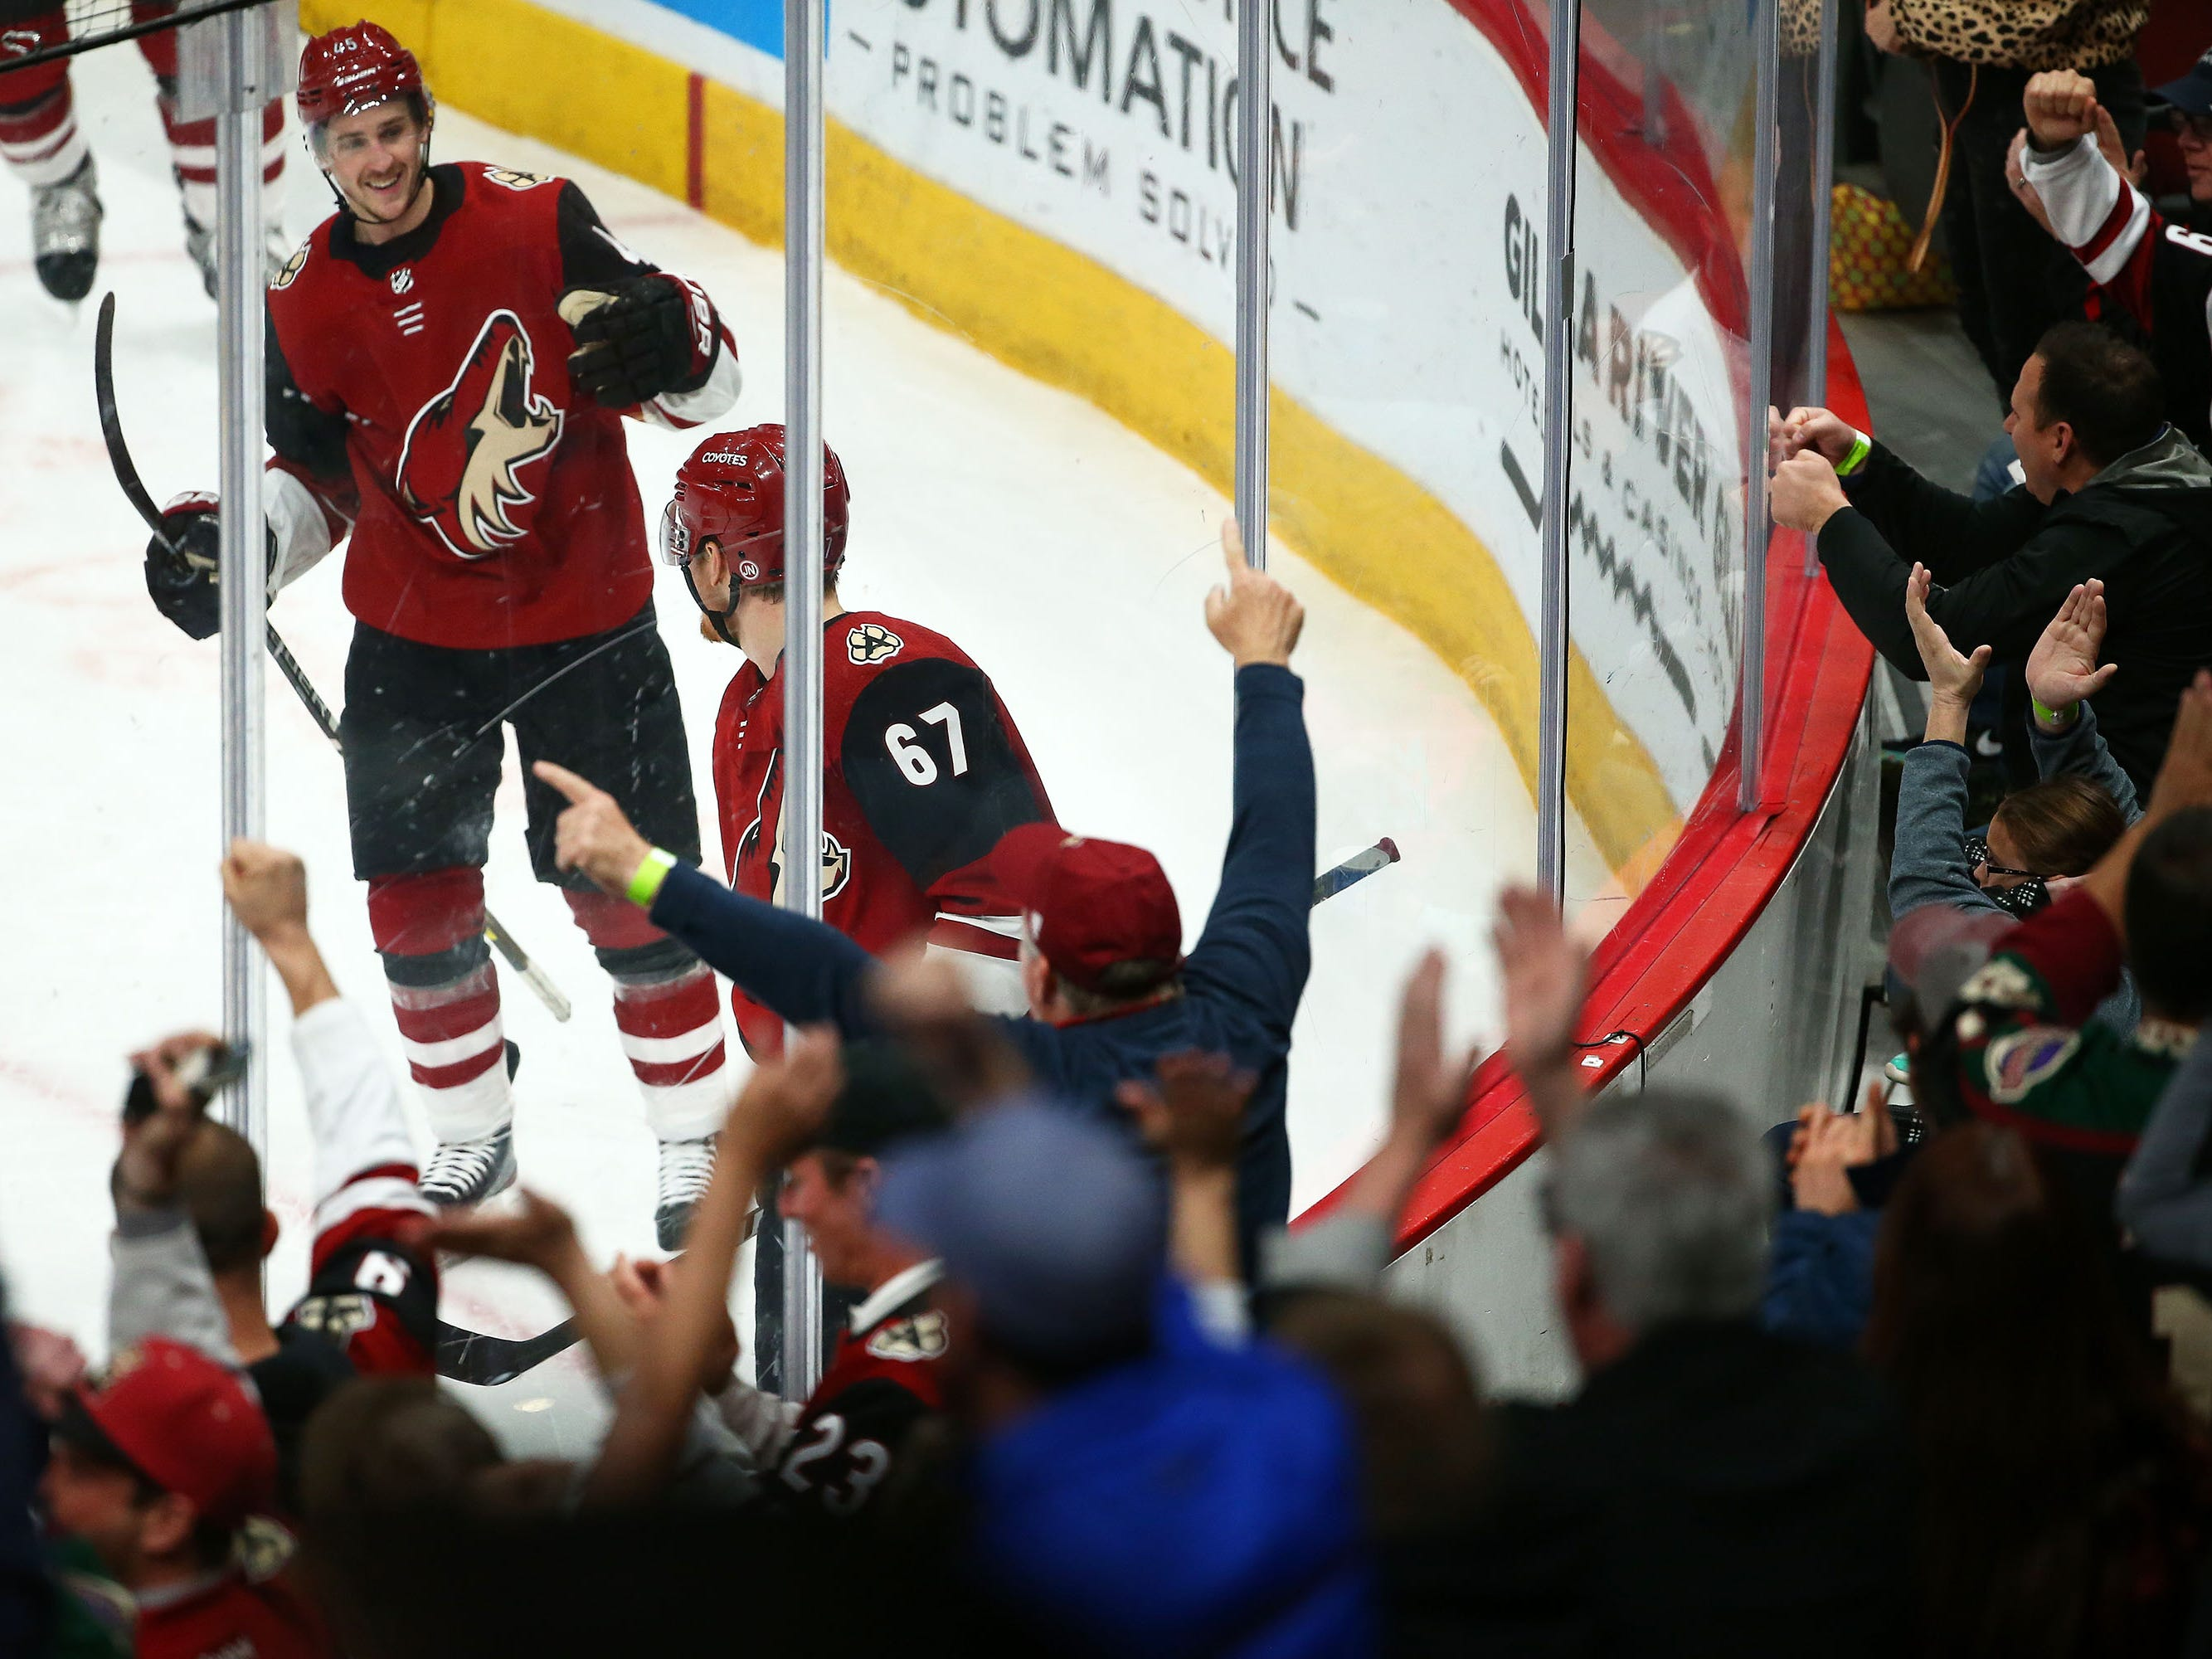 Arizona Coyotes left wing Lawson Crouse (67) celebrates his goal against the Anaheim Ducks in the first period on Mar. 5, 2019, at Gila River Arena in Glendale, Ariz.